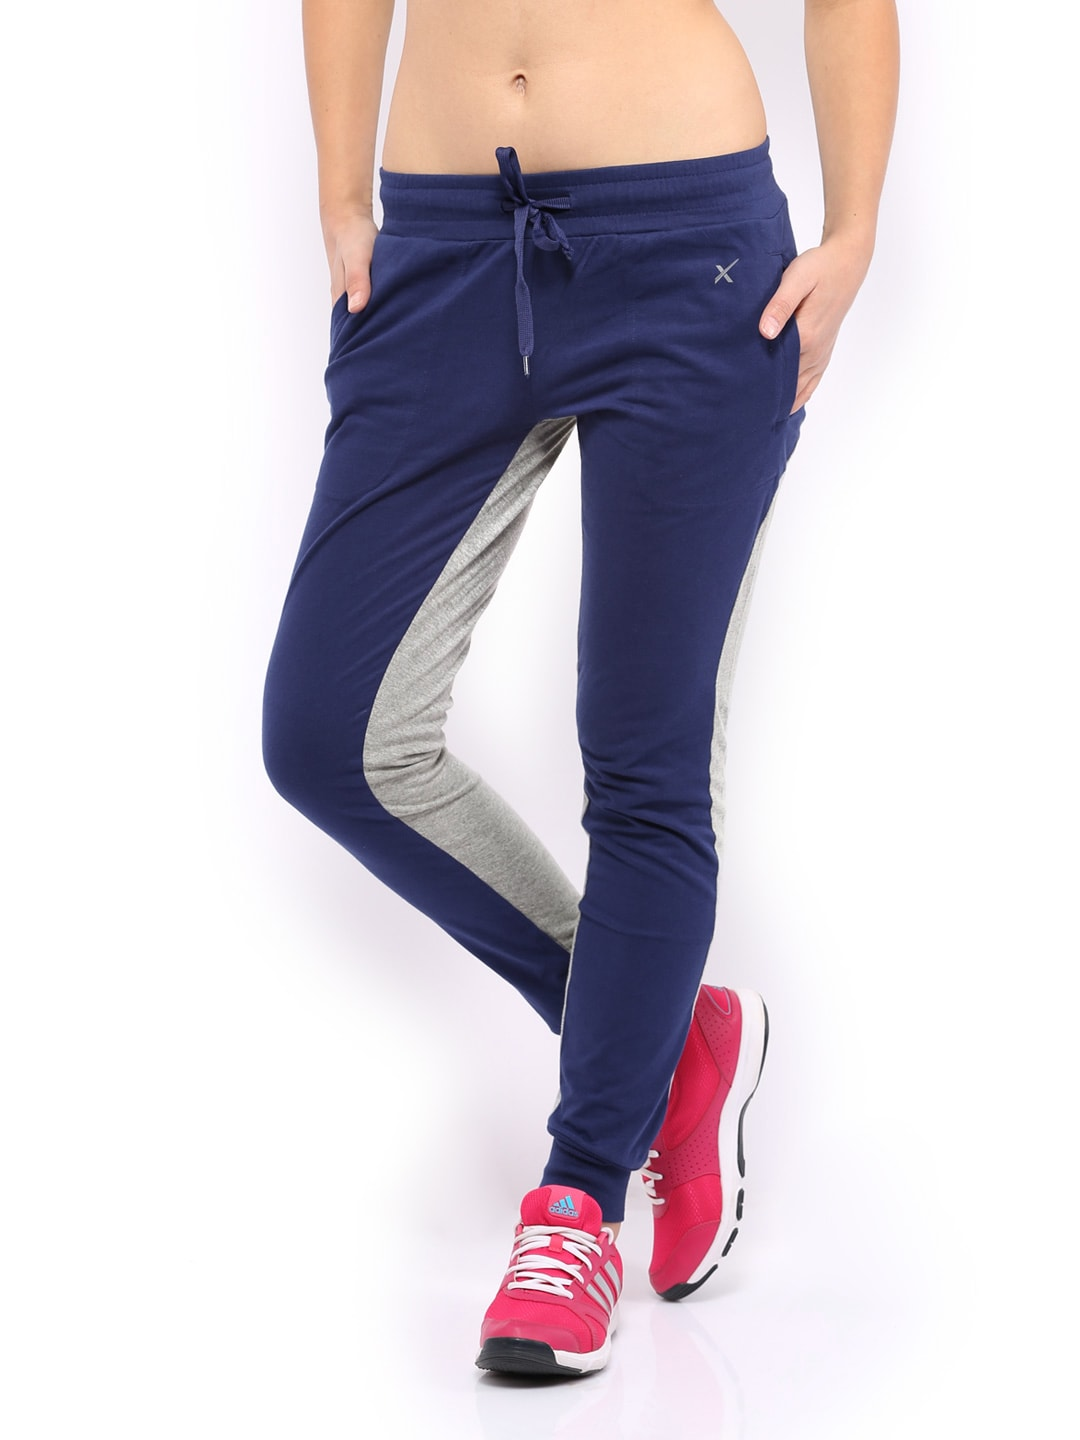 Creative Home Clothing Women Clothing Track Pants Style Quotient Track Pants